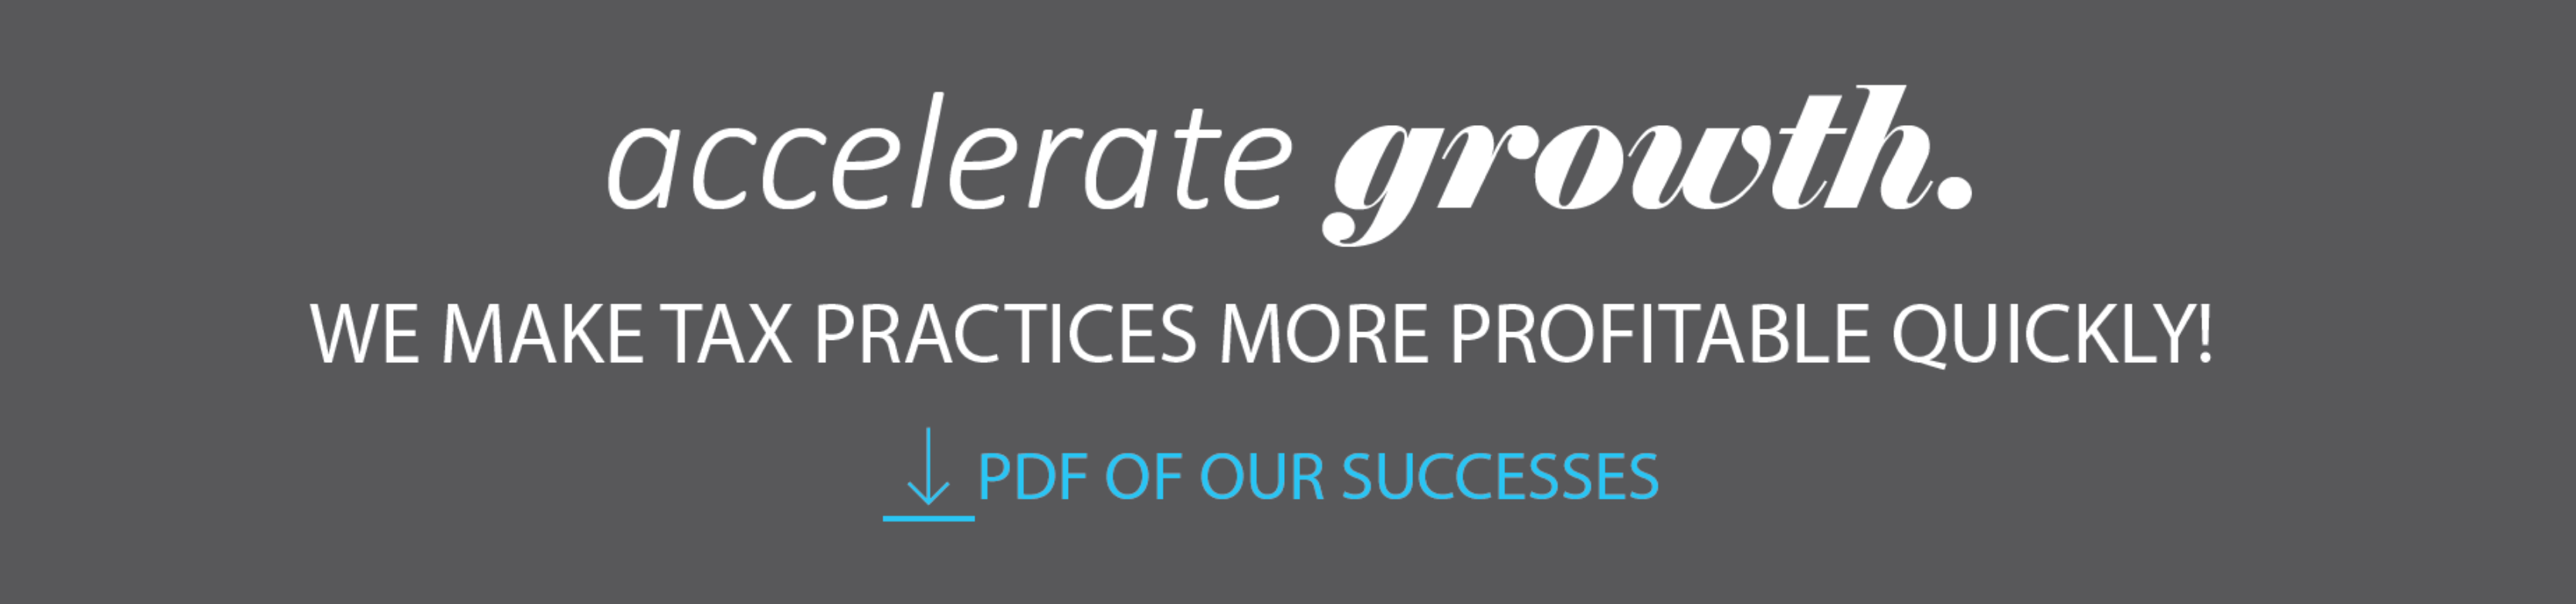 Accelerate growth. Download a pdf of our successes.